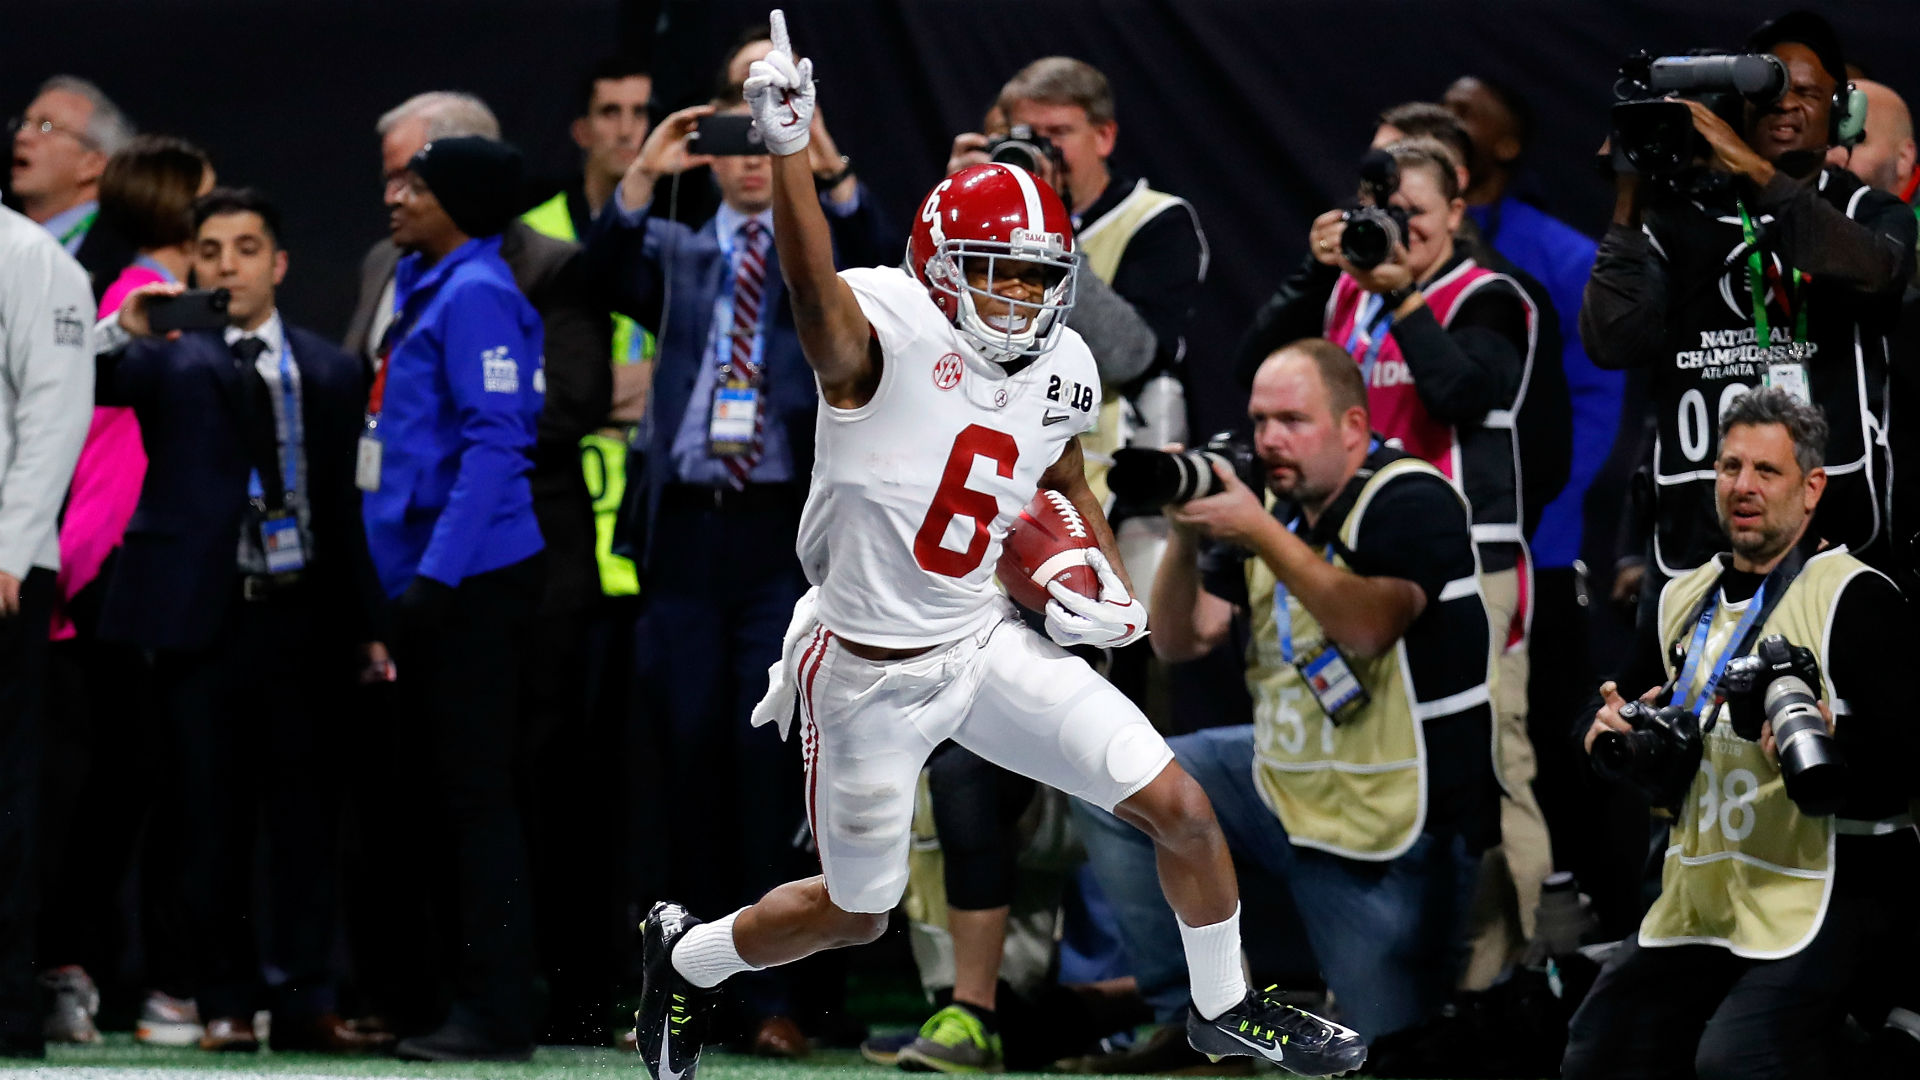 National Championship thriller scores big ratings for ESPN